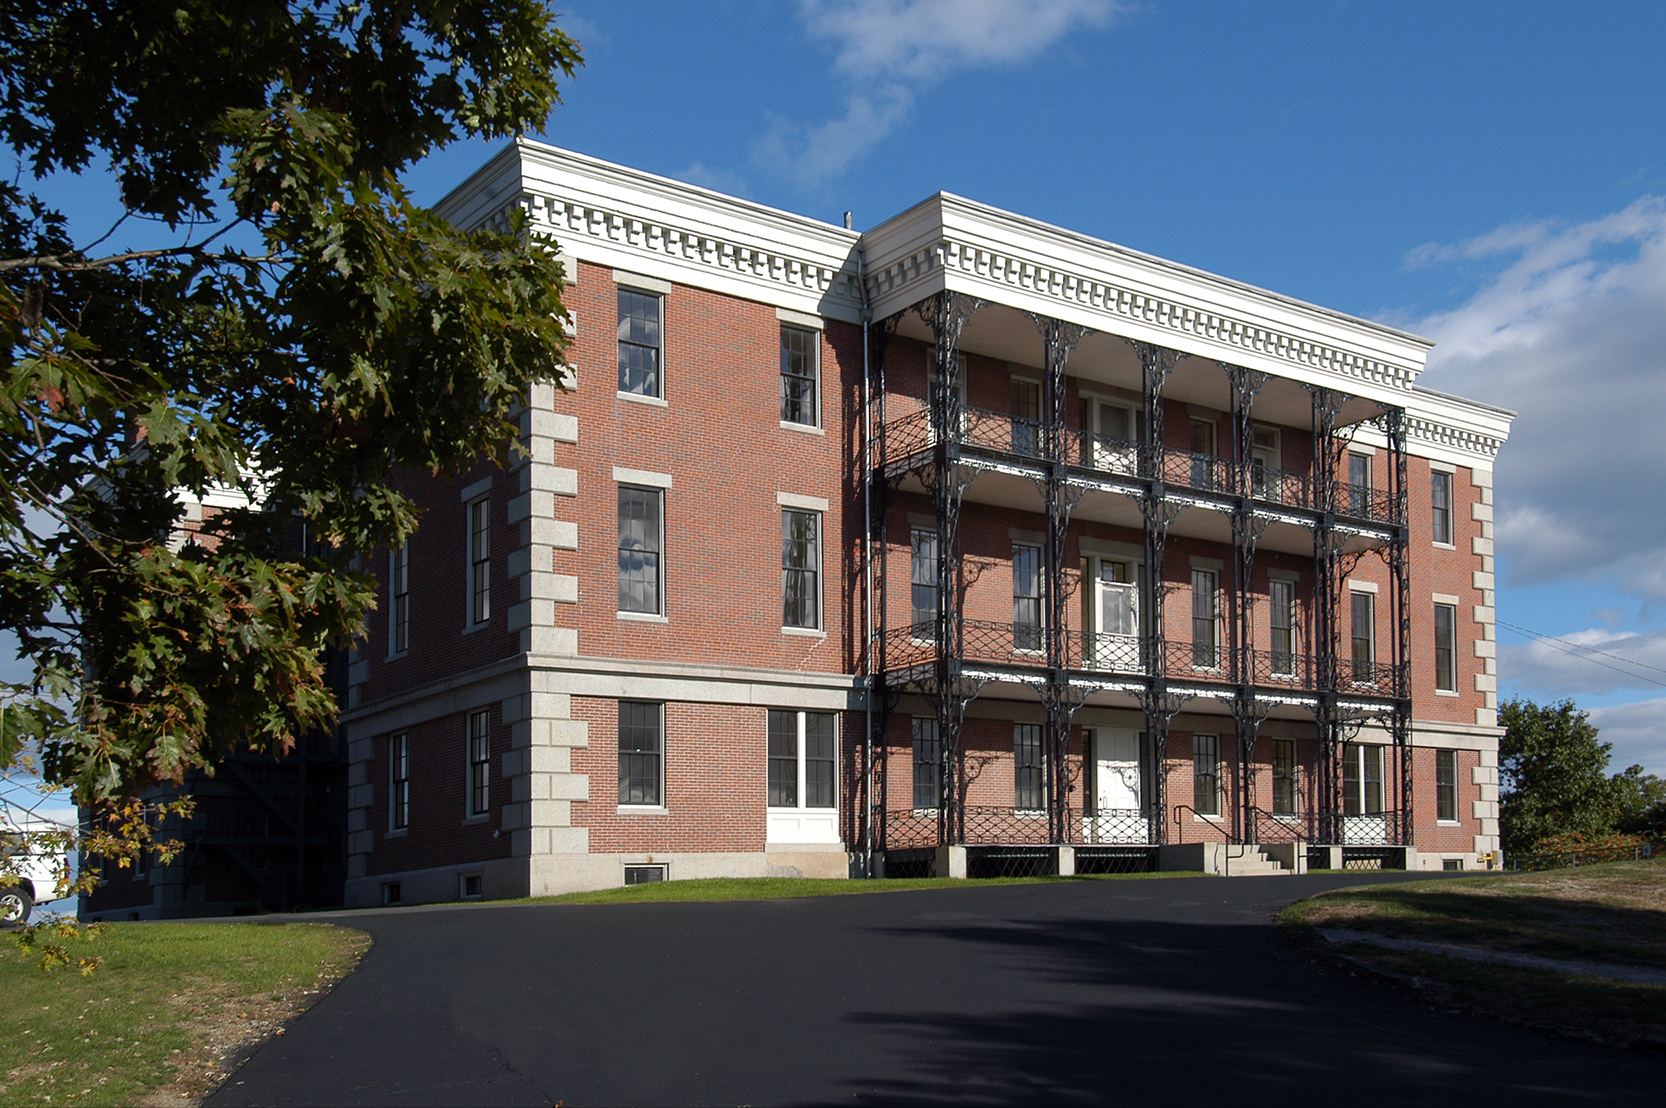 Portland's U.S. Marine Hospital is one of the few with intact iron porches.